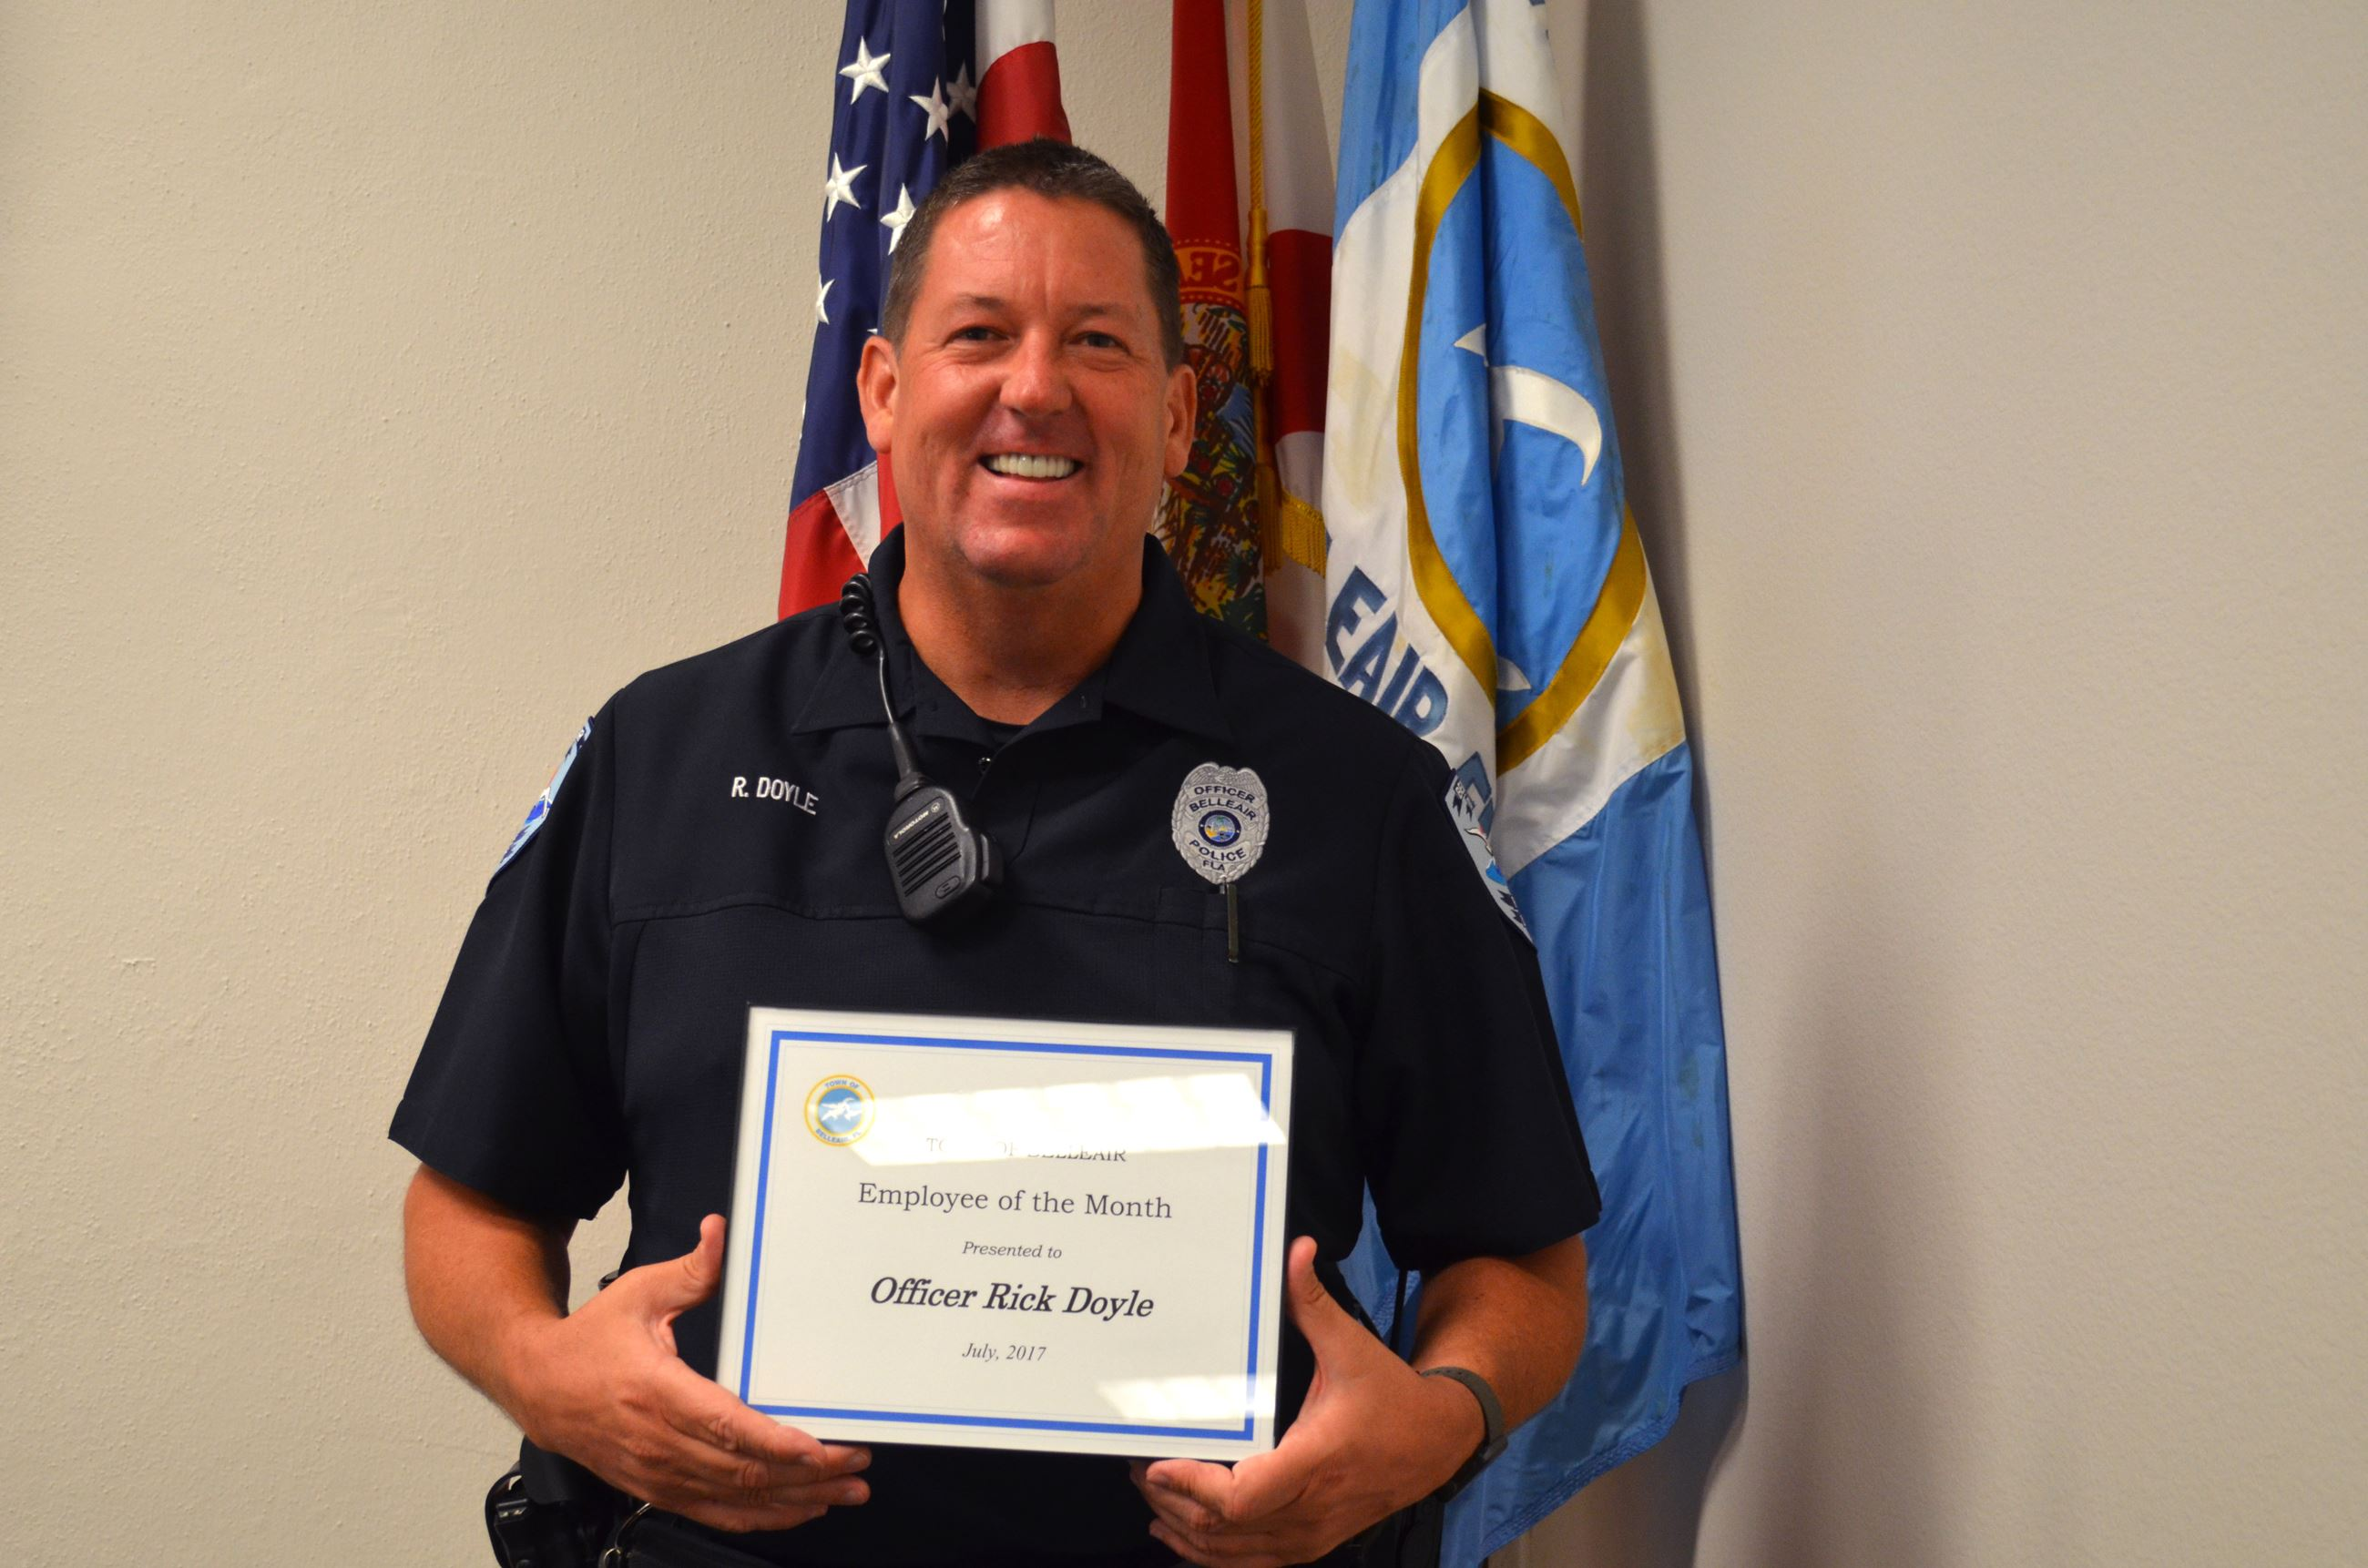 Belleair Police Officer Rick Doyle smiles with his Employee of the Month Certificate for July, 2017.